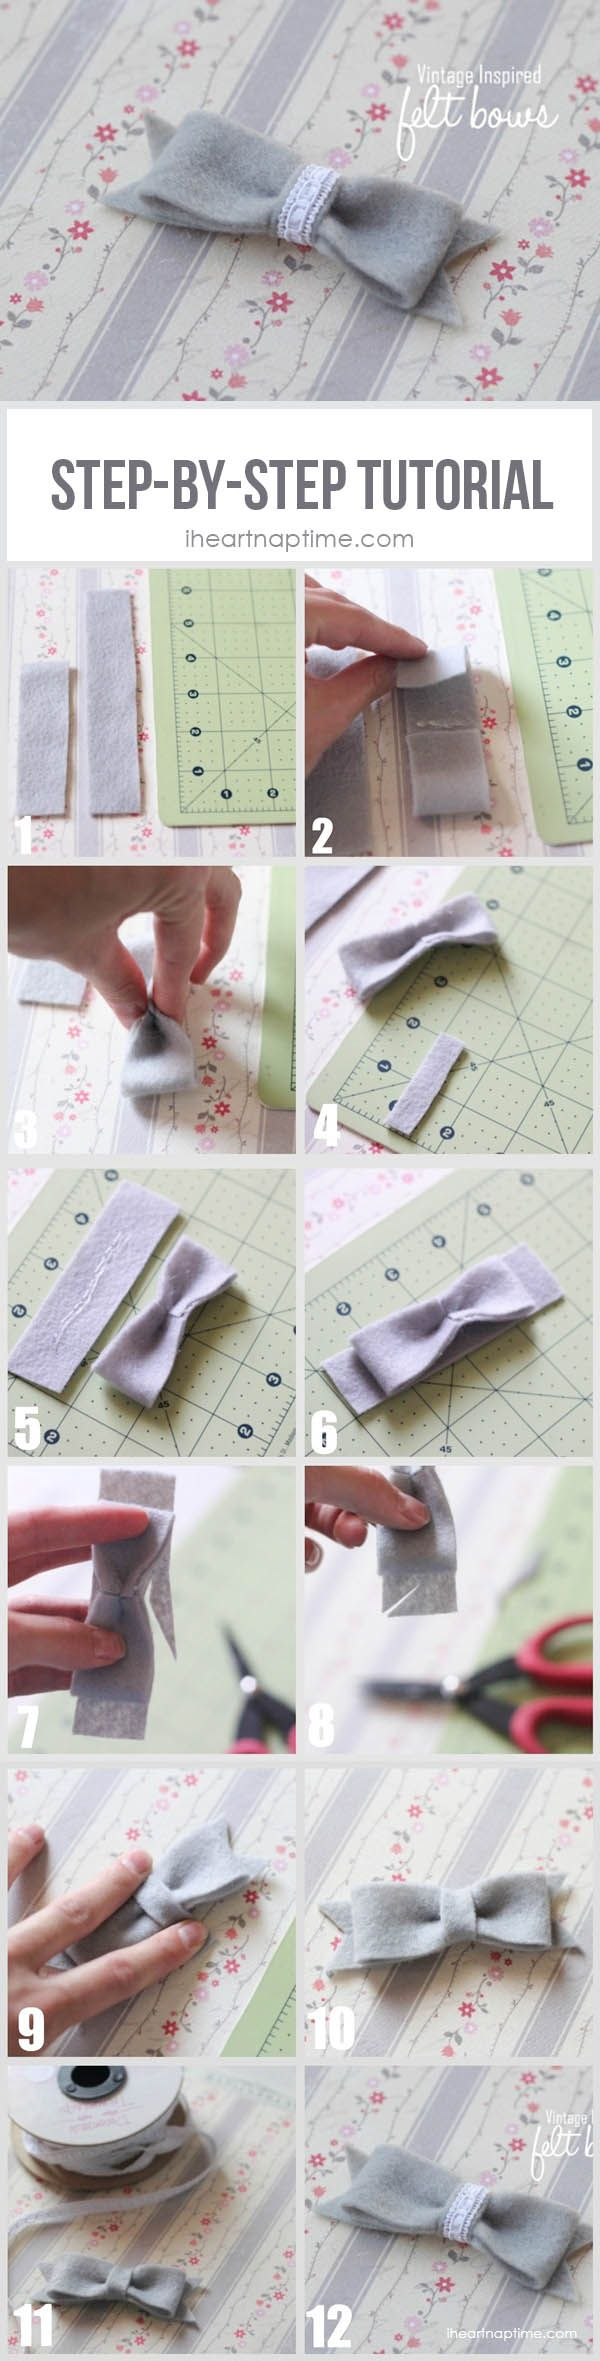 Felt bow step-by-step tutorial on iheartnaptime.com #hairaccessories #crafts